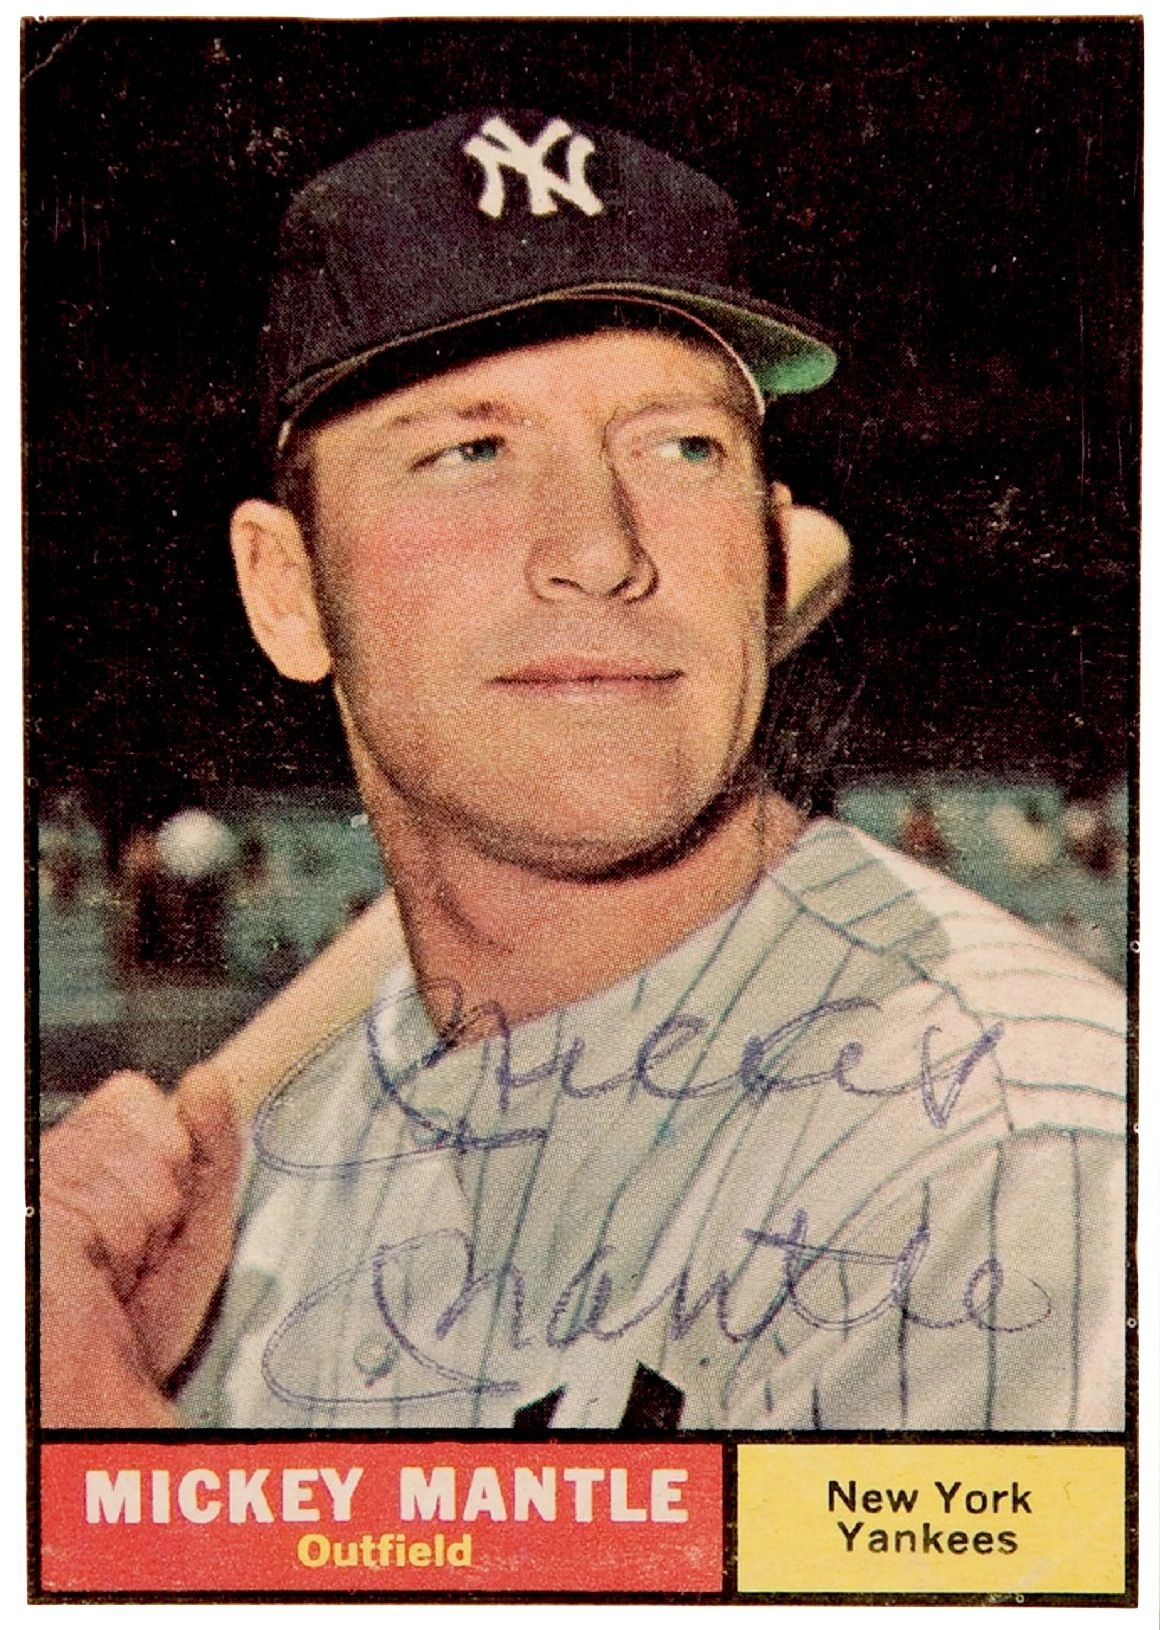 Mickey Mantle Topps 1961 Very Sentimental Card My Bro Gave This Same Card Signed To My Dad Love Baseball Cards Mickey Mantle Baseball Trading Cards